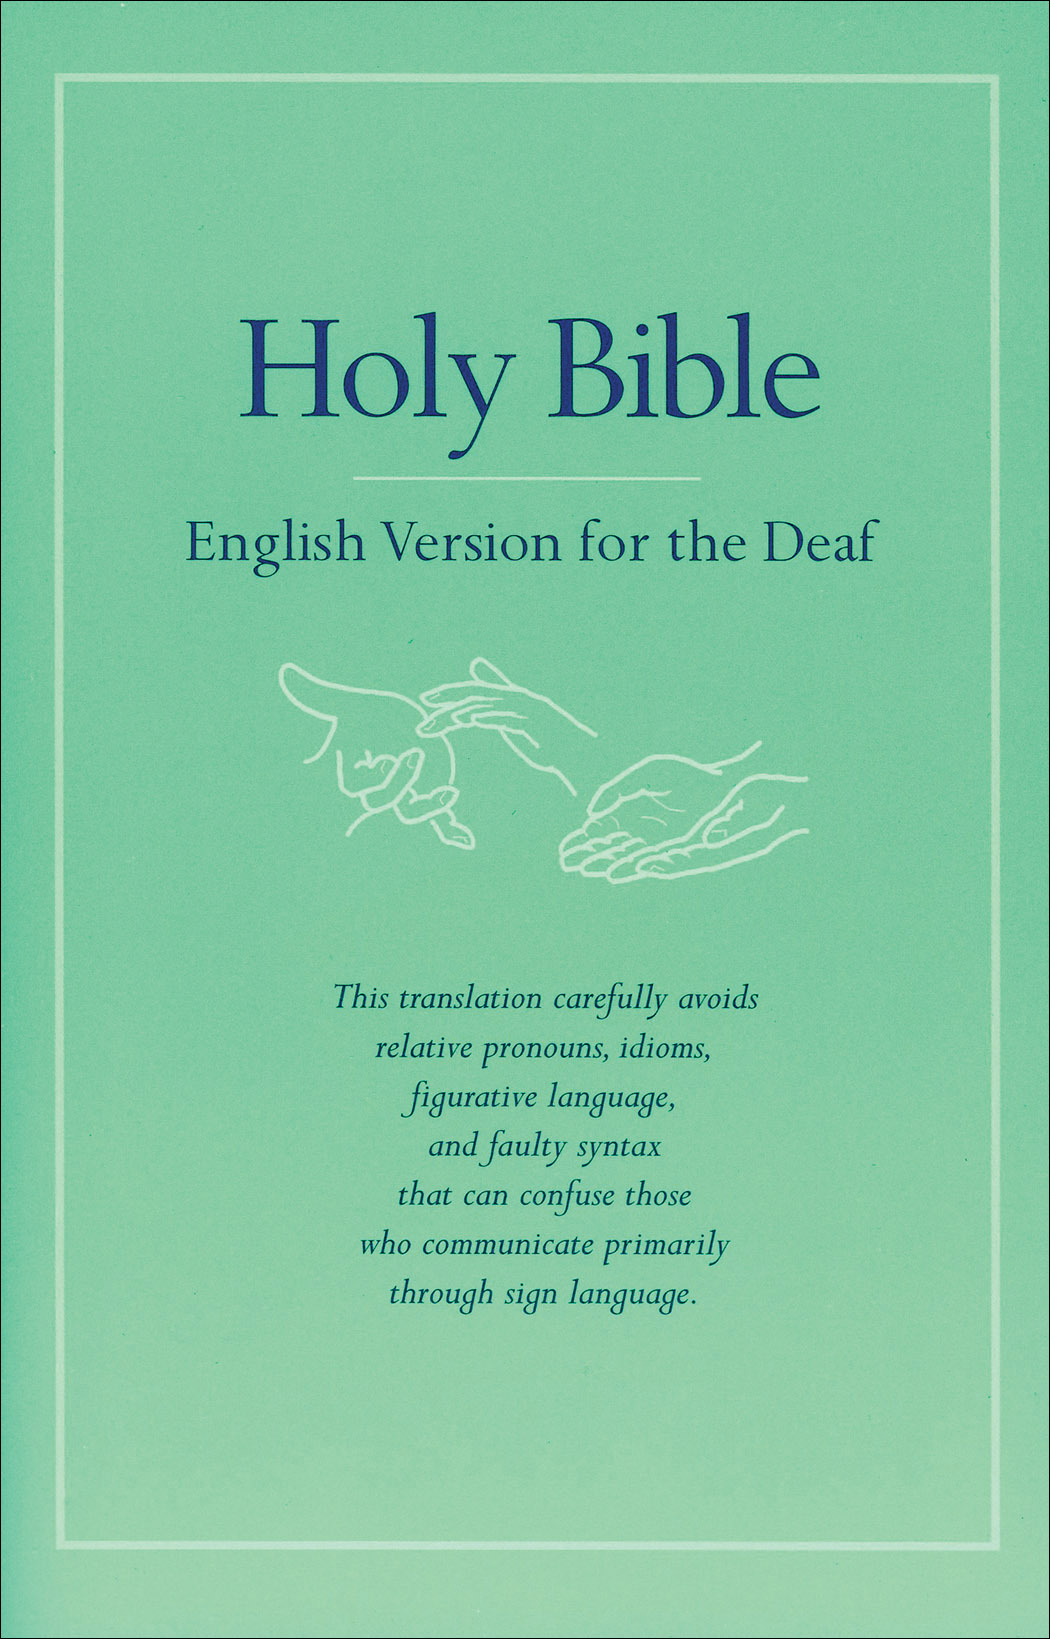 Holy Bible English Version for the Deaf | Baker Publishing Group